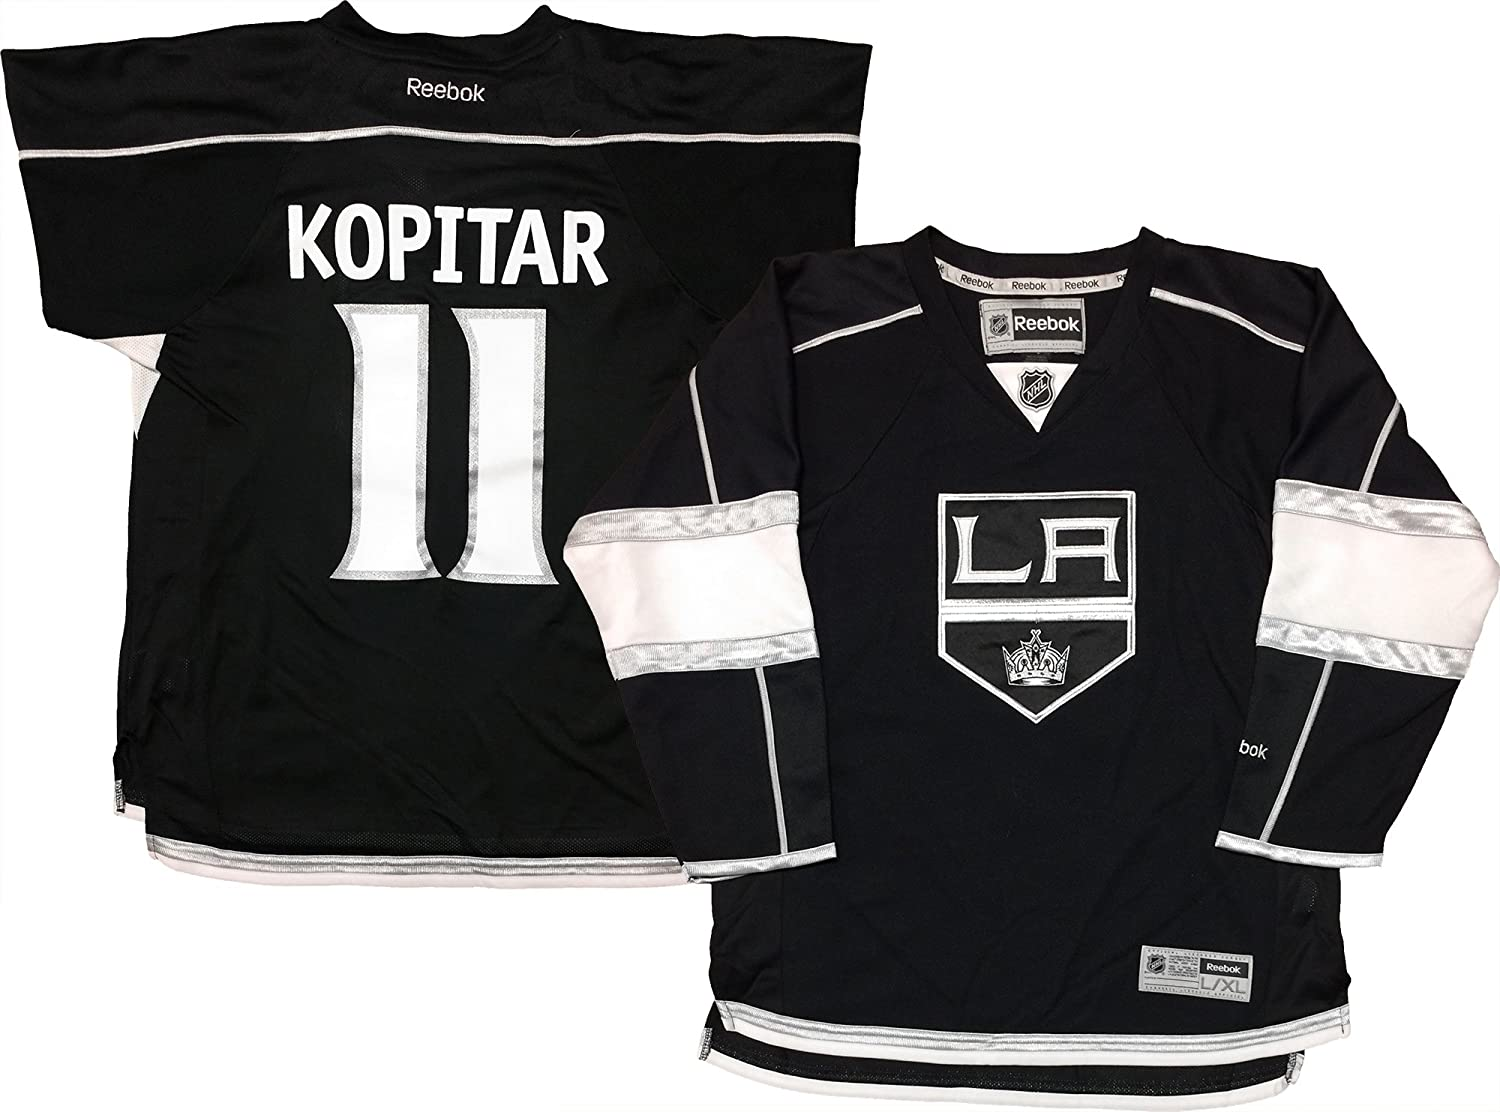 Outerstuff NHL Youth 8-20 Screen Printed Premier Player Name and Number Home Jersey